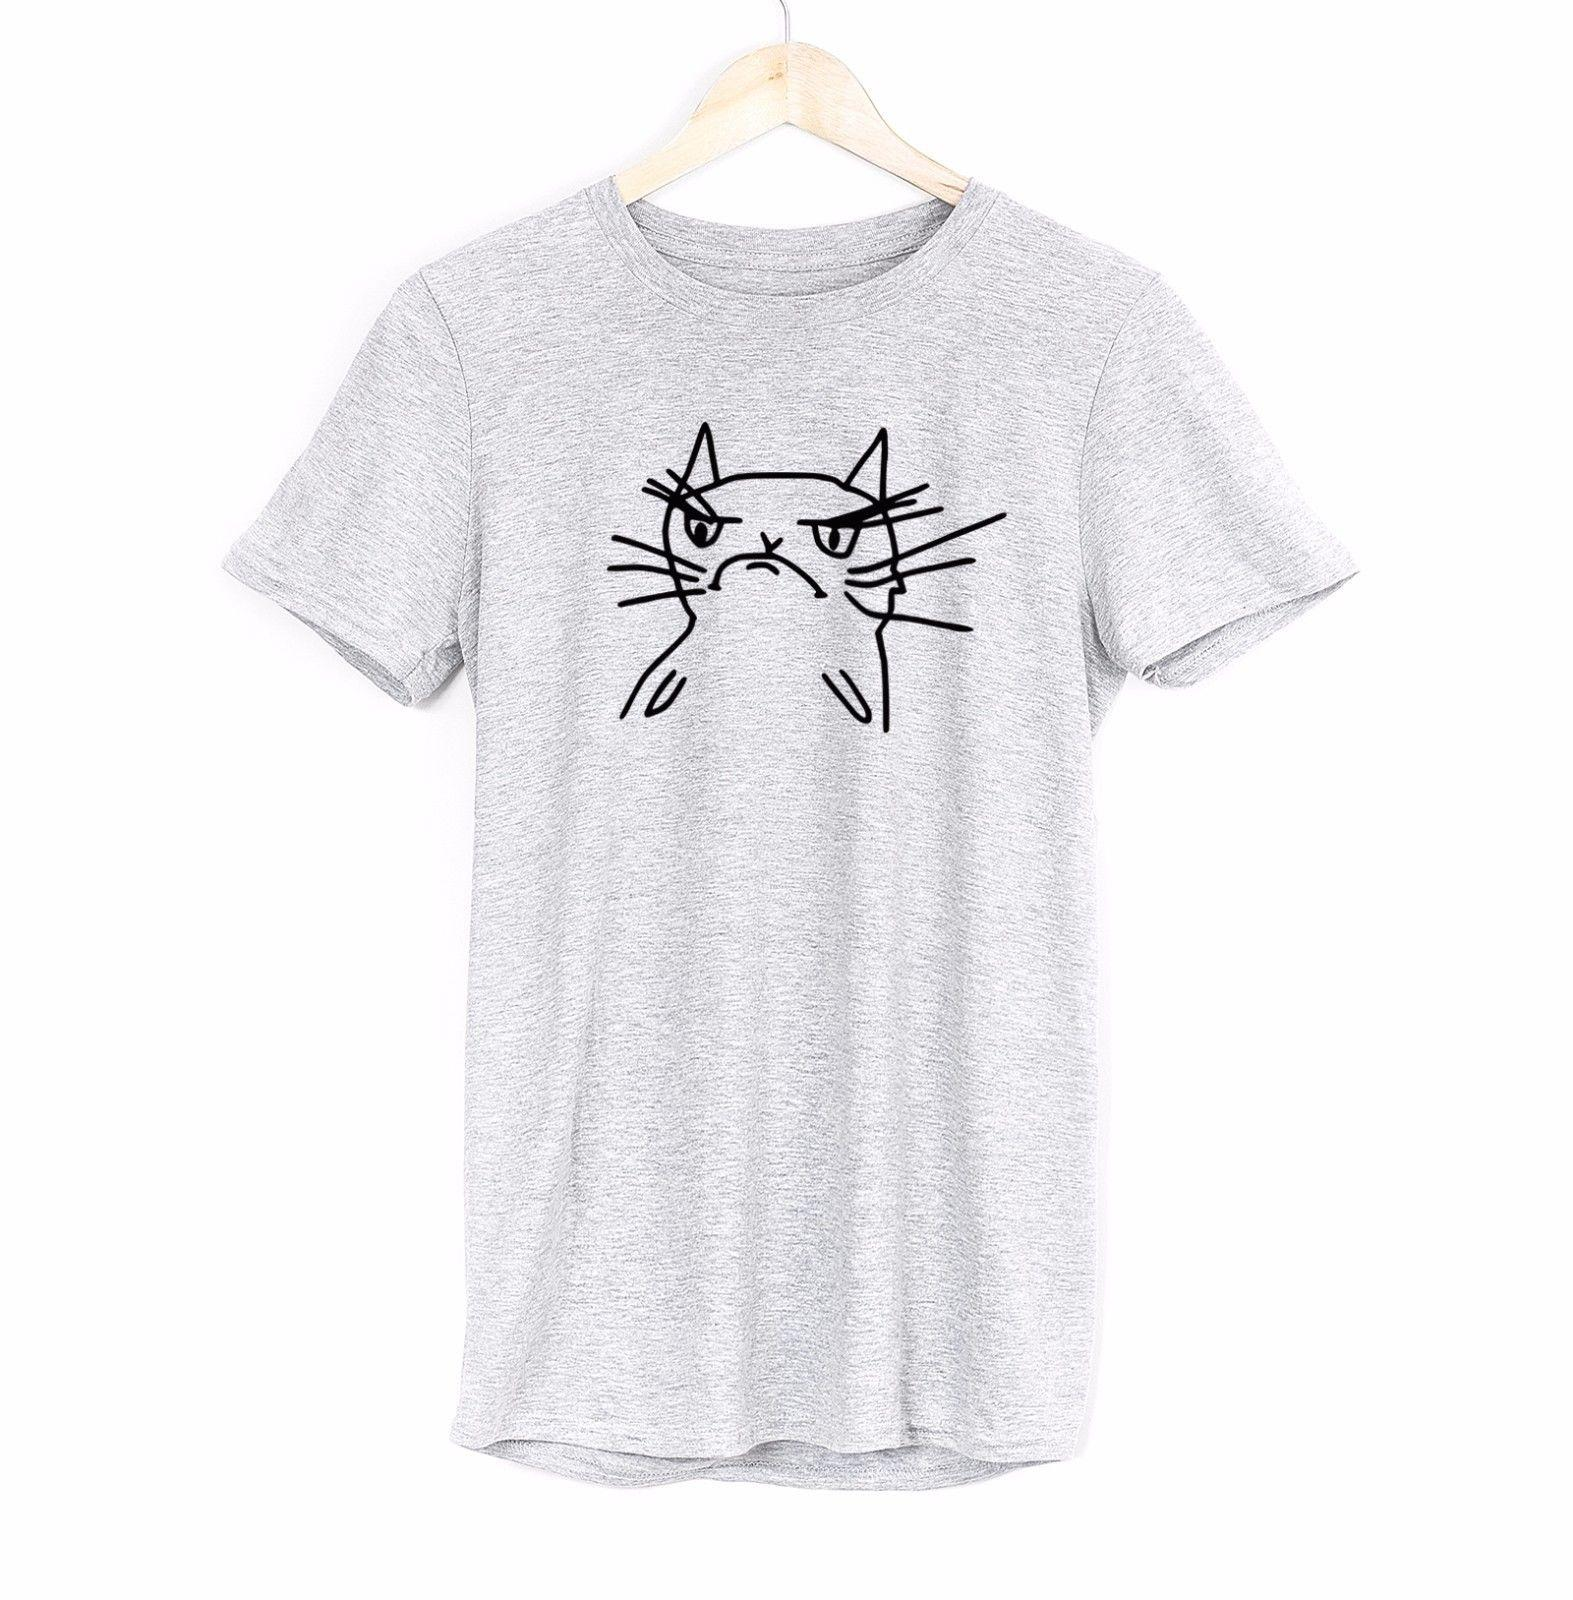 ae1f5326 Angry Cat Funny Mens T Shirt Funny Fun Humor Joke Quote Husband Brother  Gift Funny Unisex Casual Tshirt Online Tshirt Shopping Artistic T Shirts  From ...